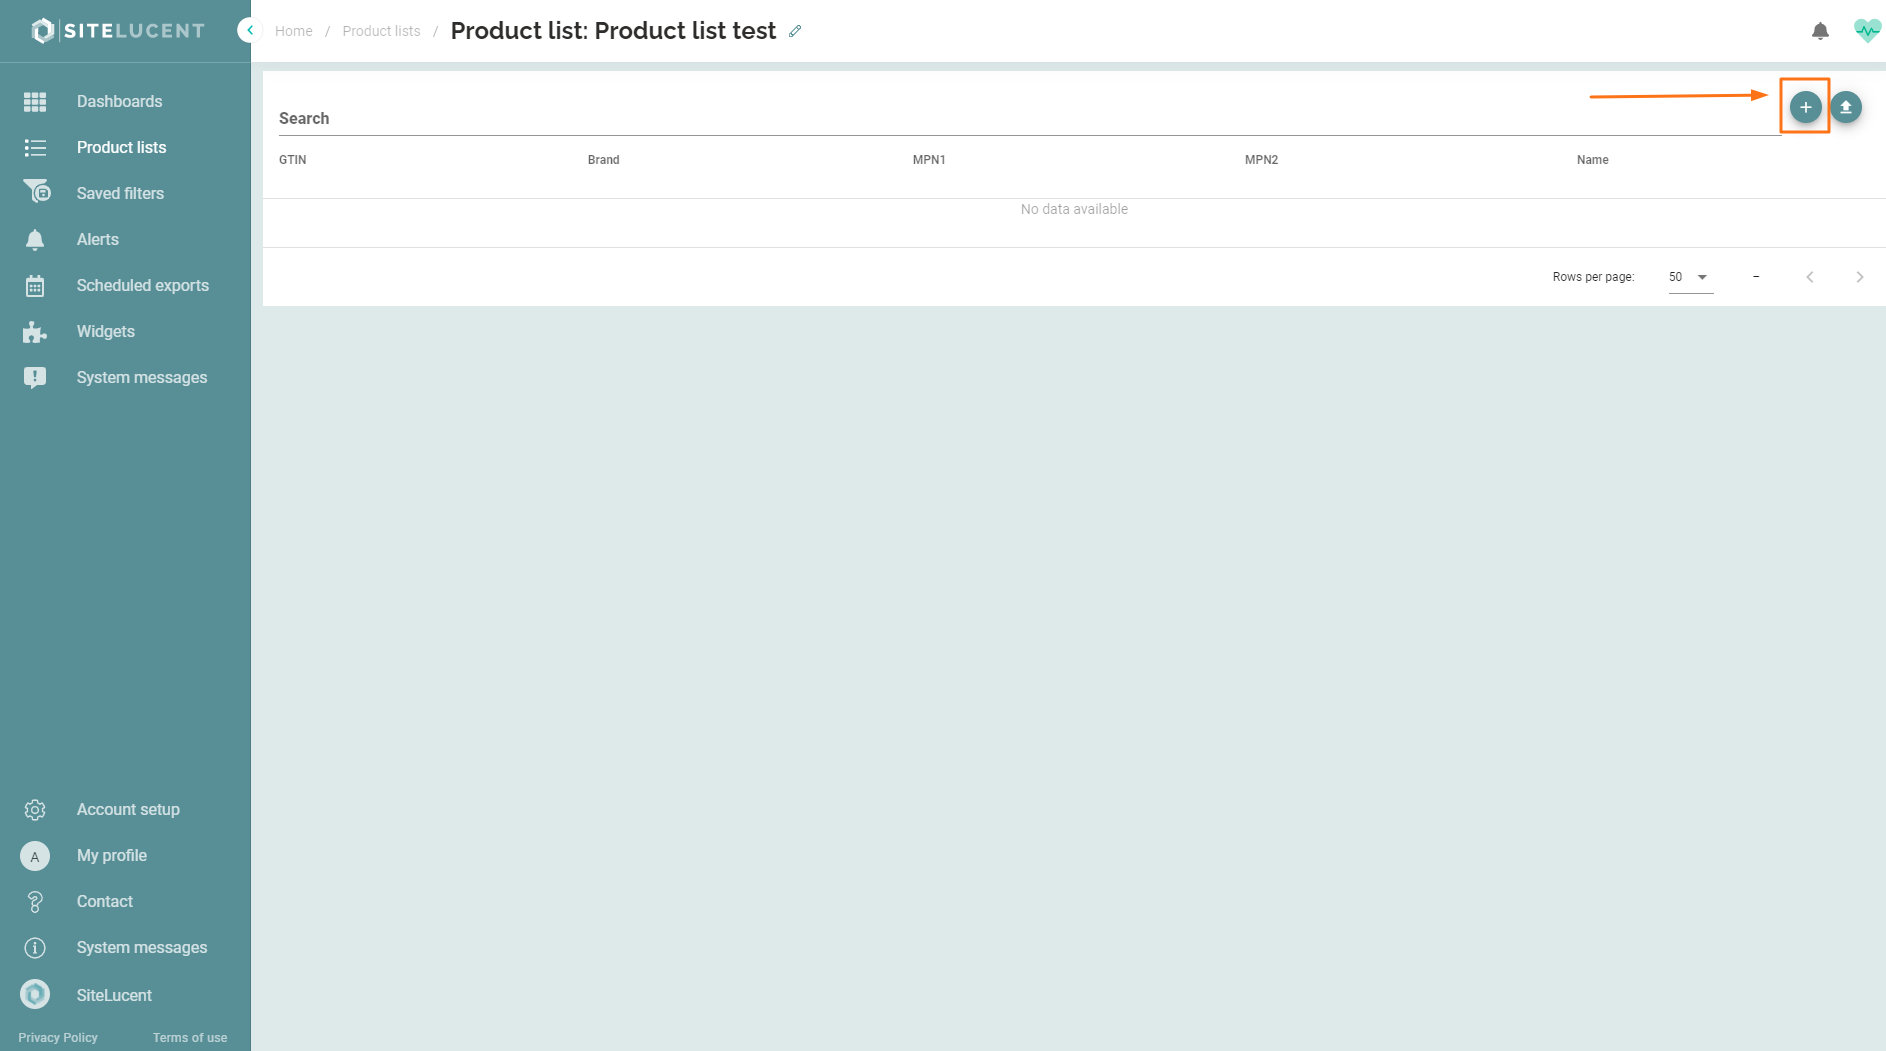 Create your product list